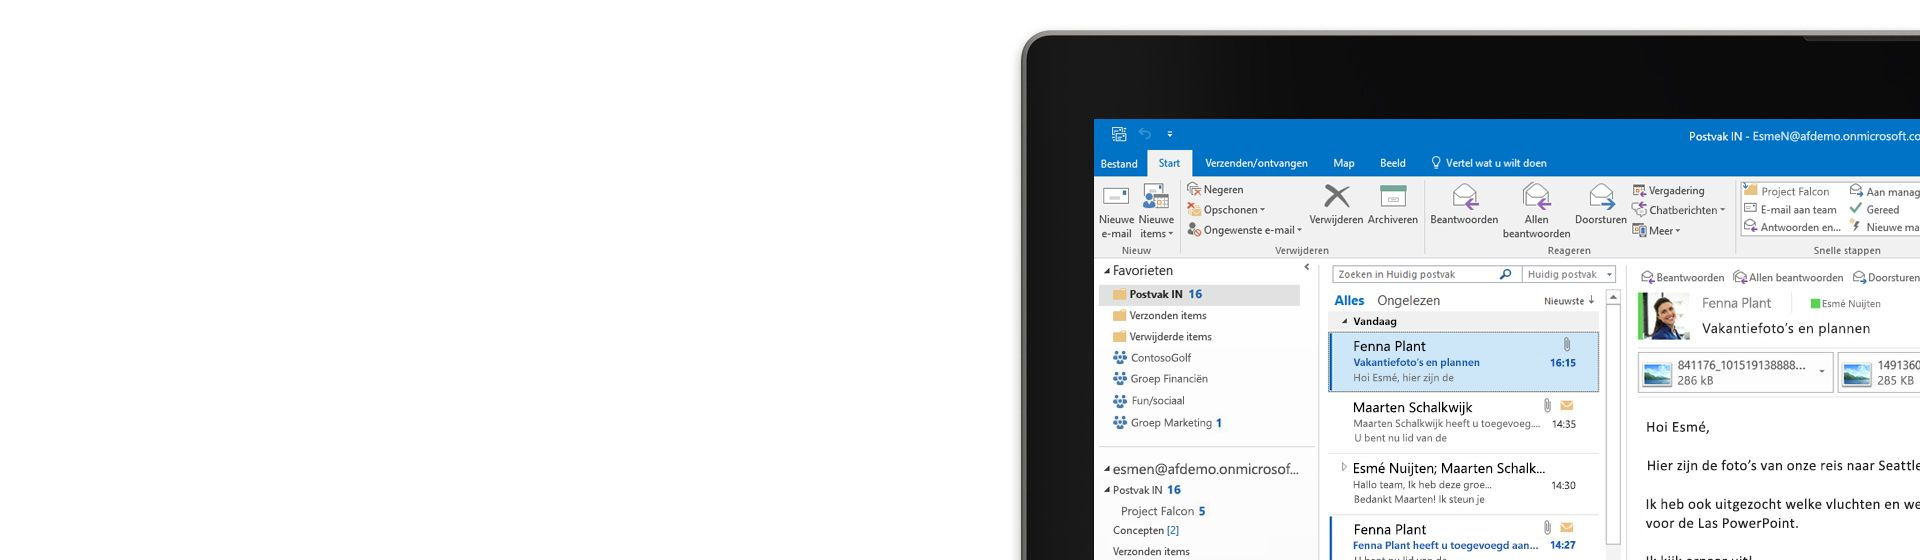 De hoek van een computerscherm met een postvak IN in Outlook